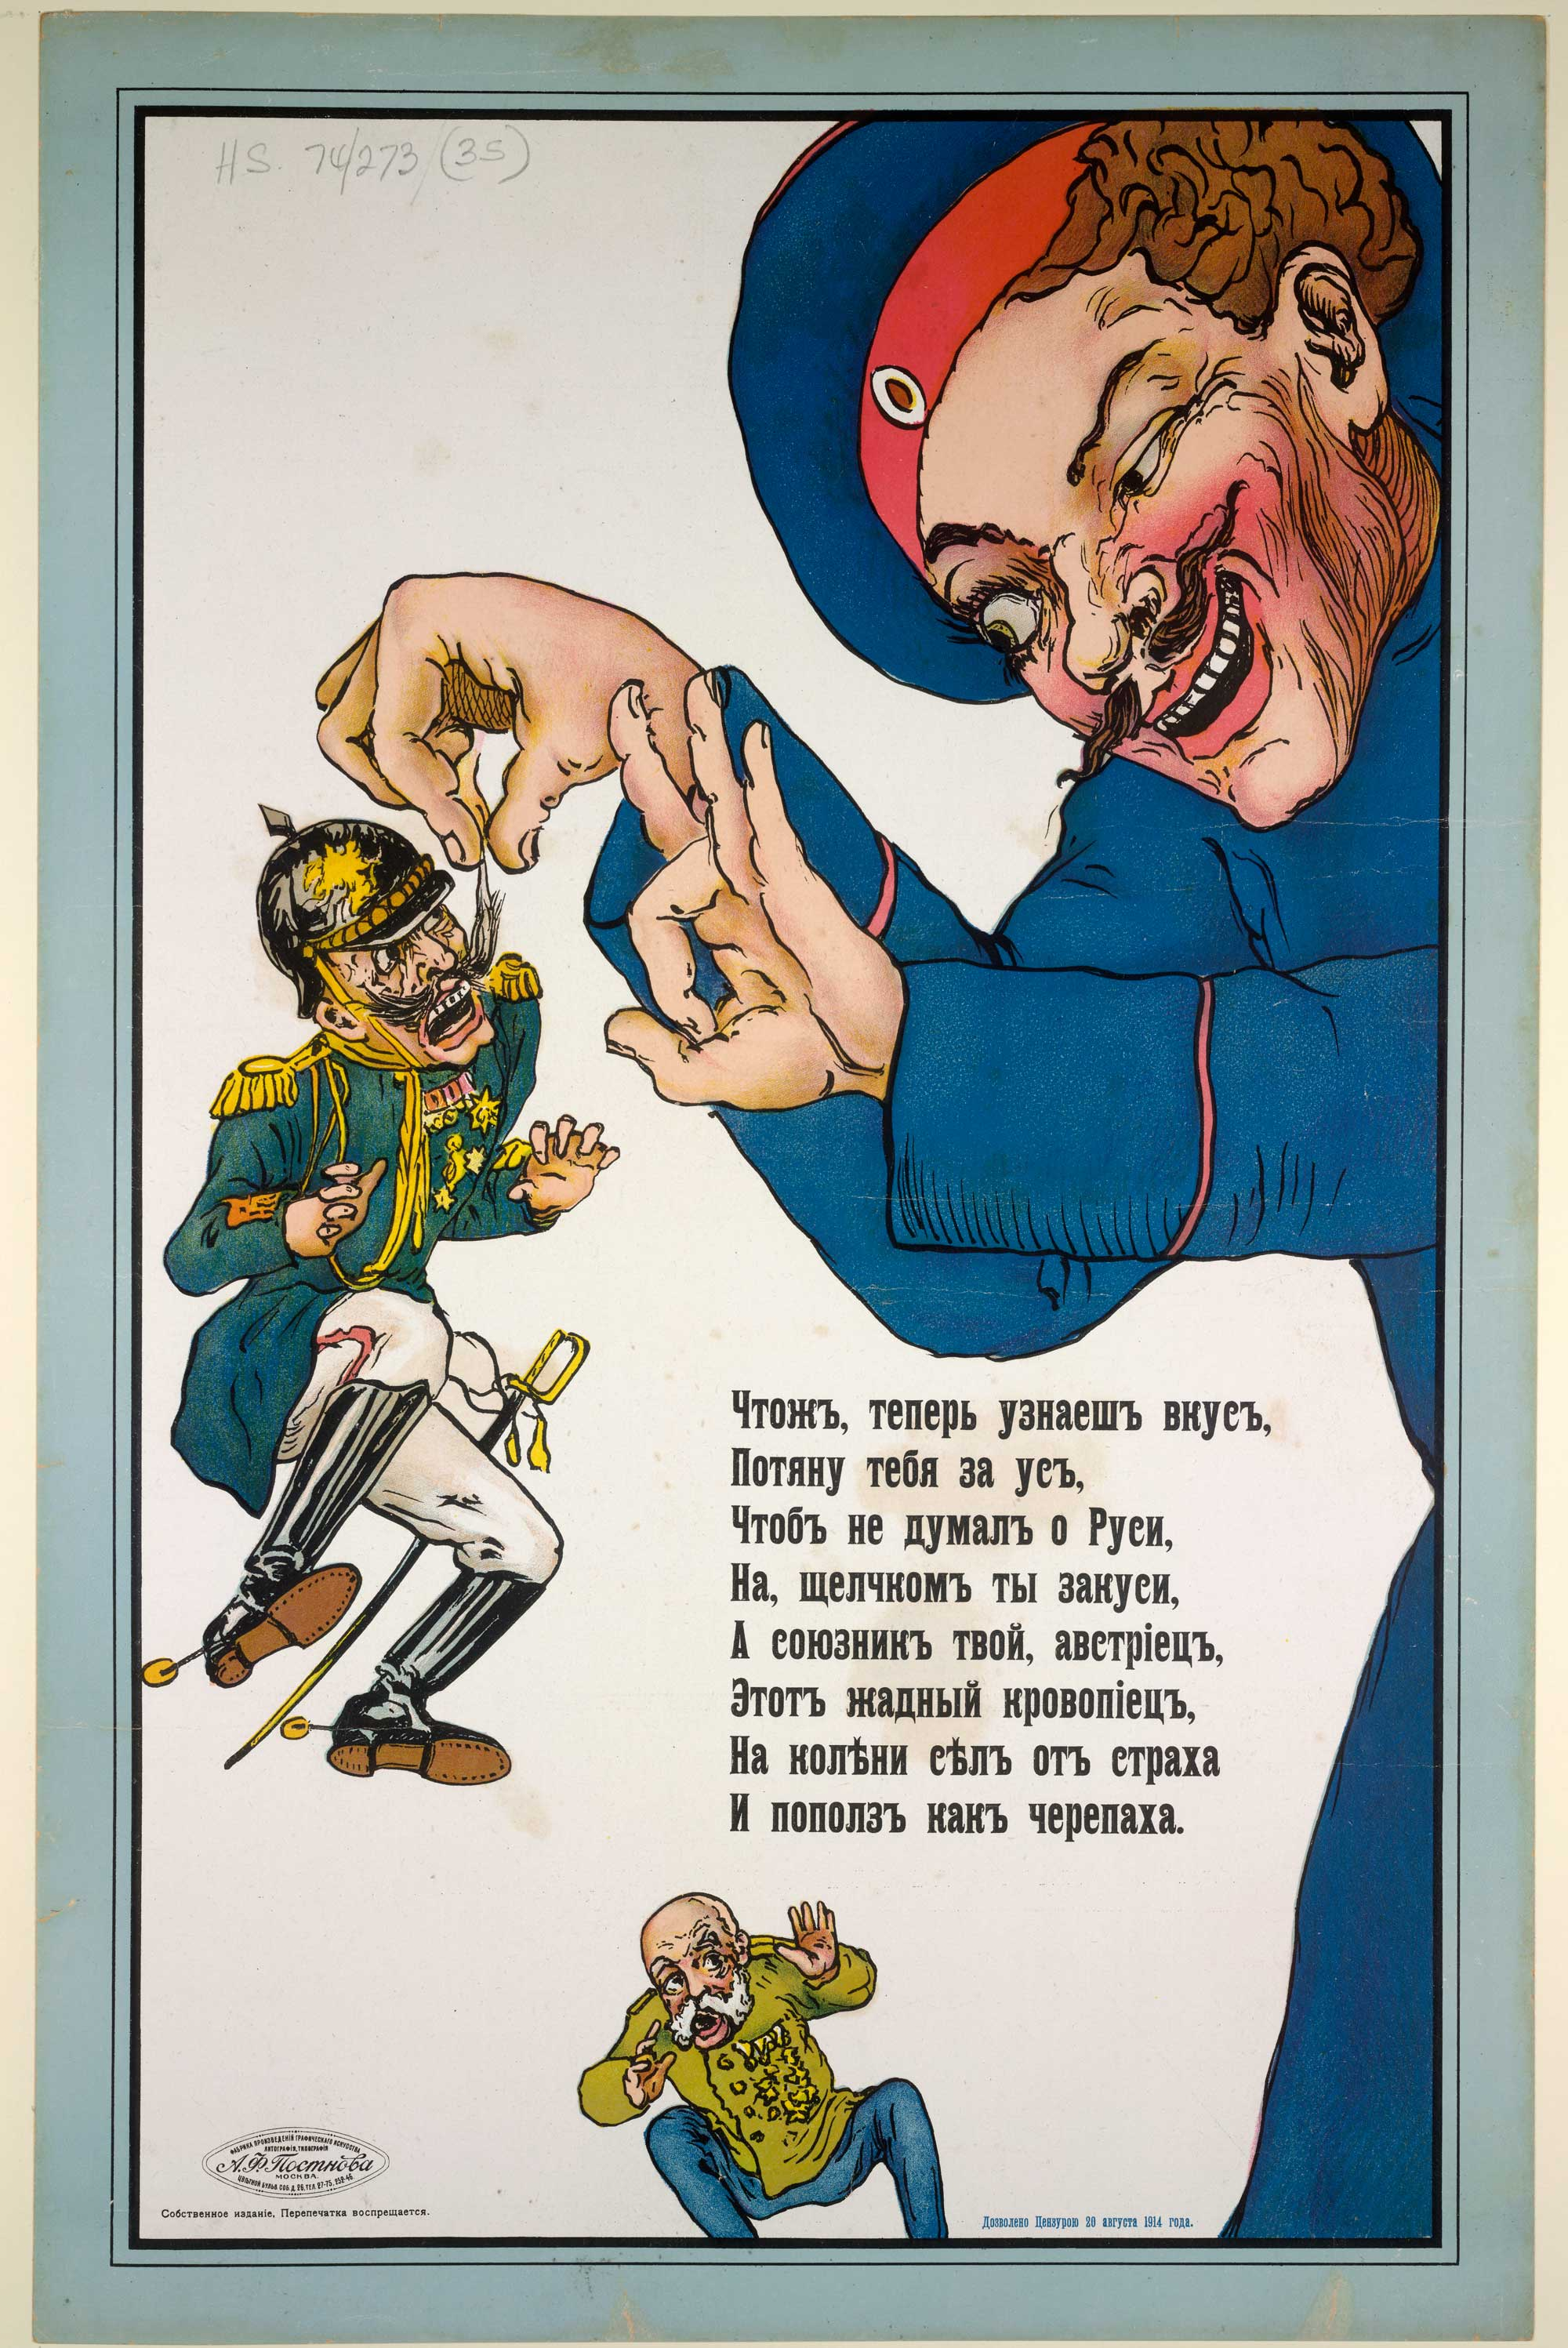 This Russian propaganda poster shows a caricature of Kaiser Wilhelm II (1859–1941) – the last German emperor and king of Prussia, whose policies had contributed to the outbreak of the war.